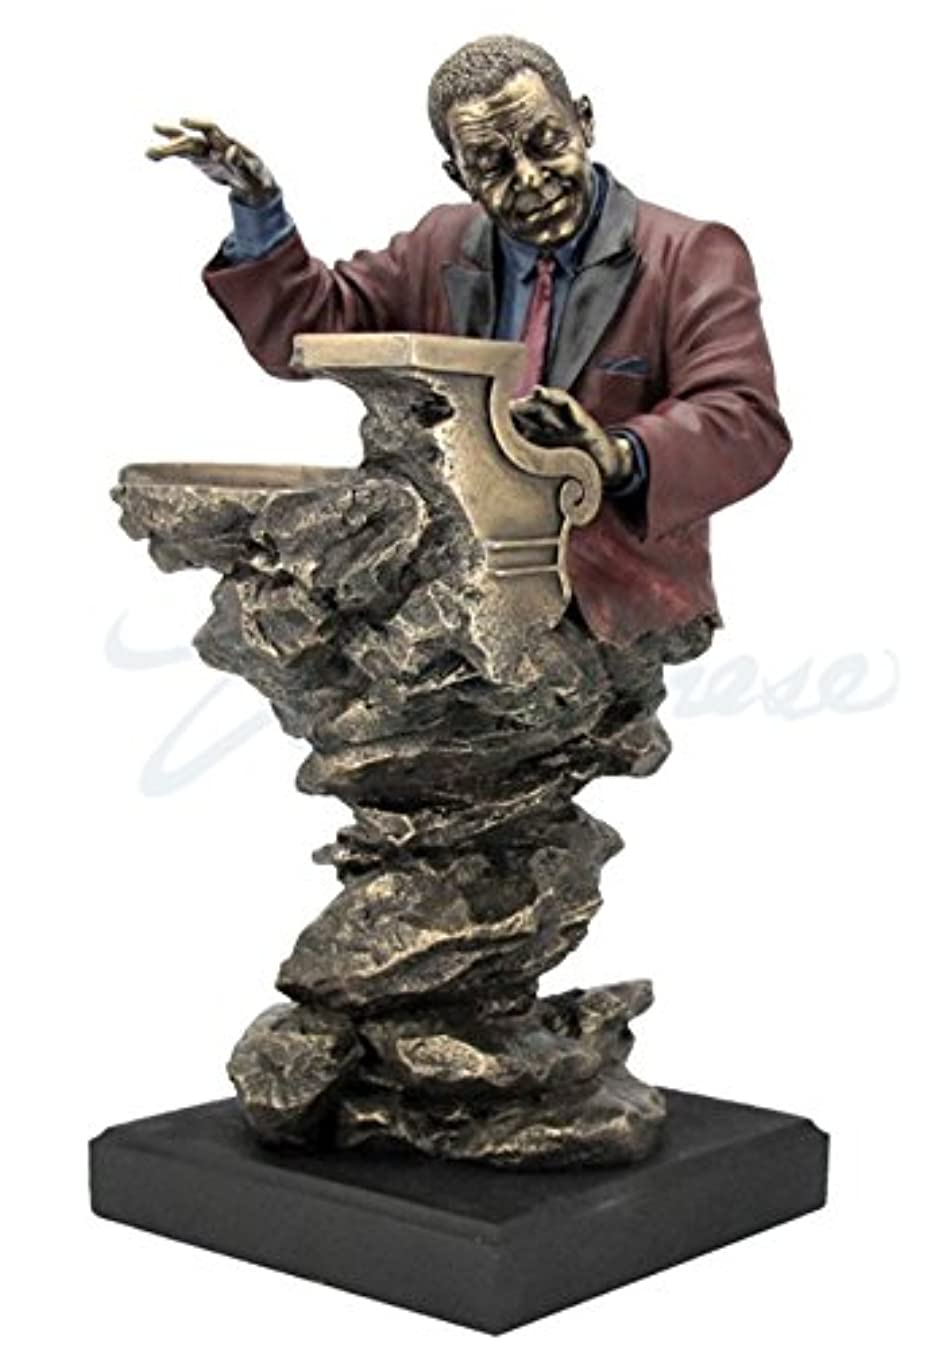 Artistic Piano Player Statue Sculpture - Jazz Band Collection